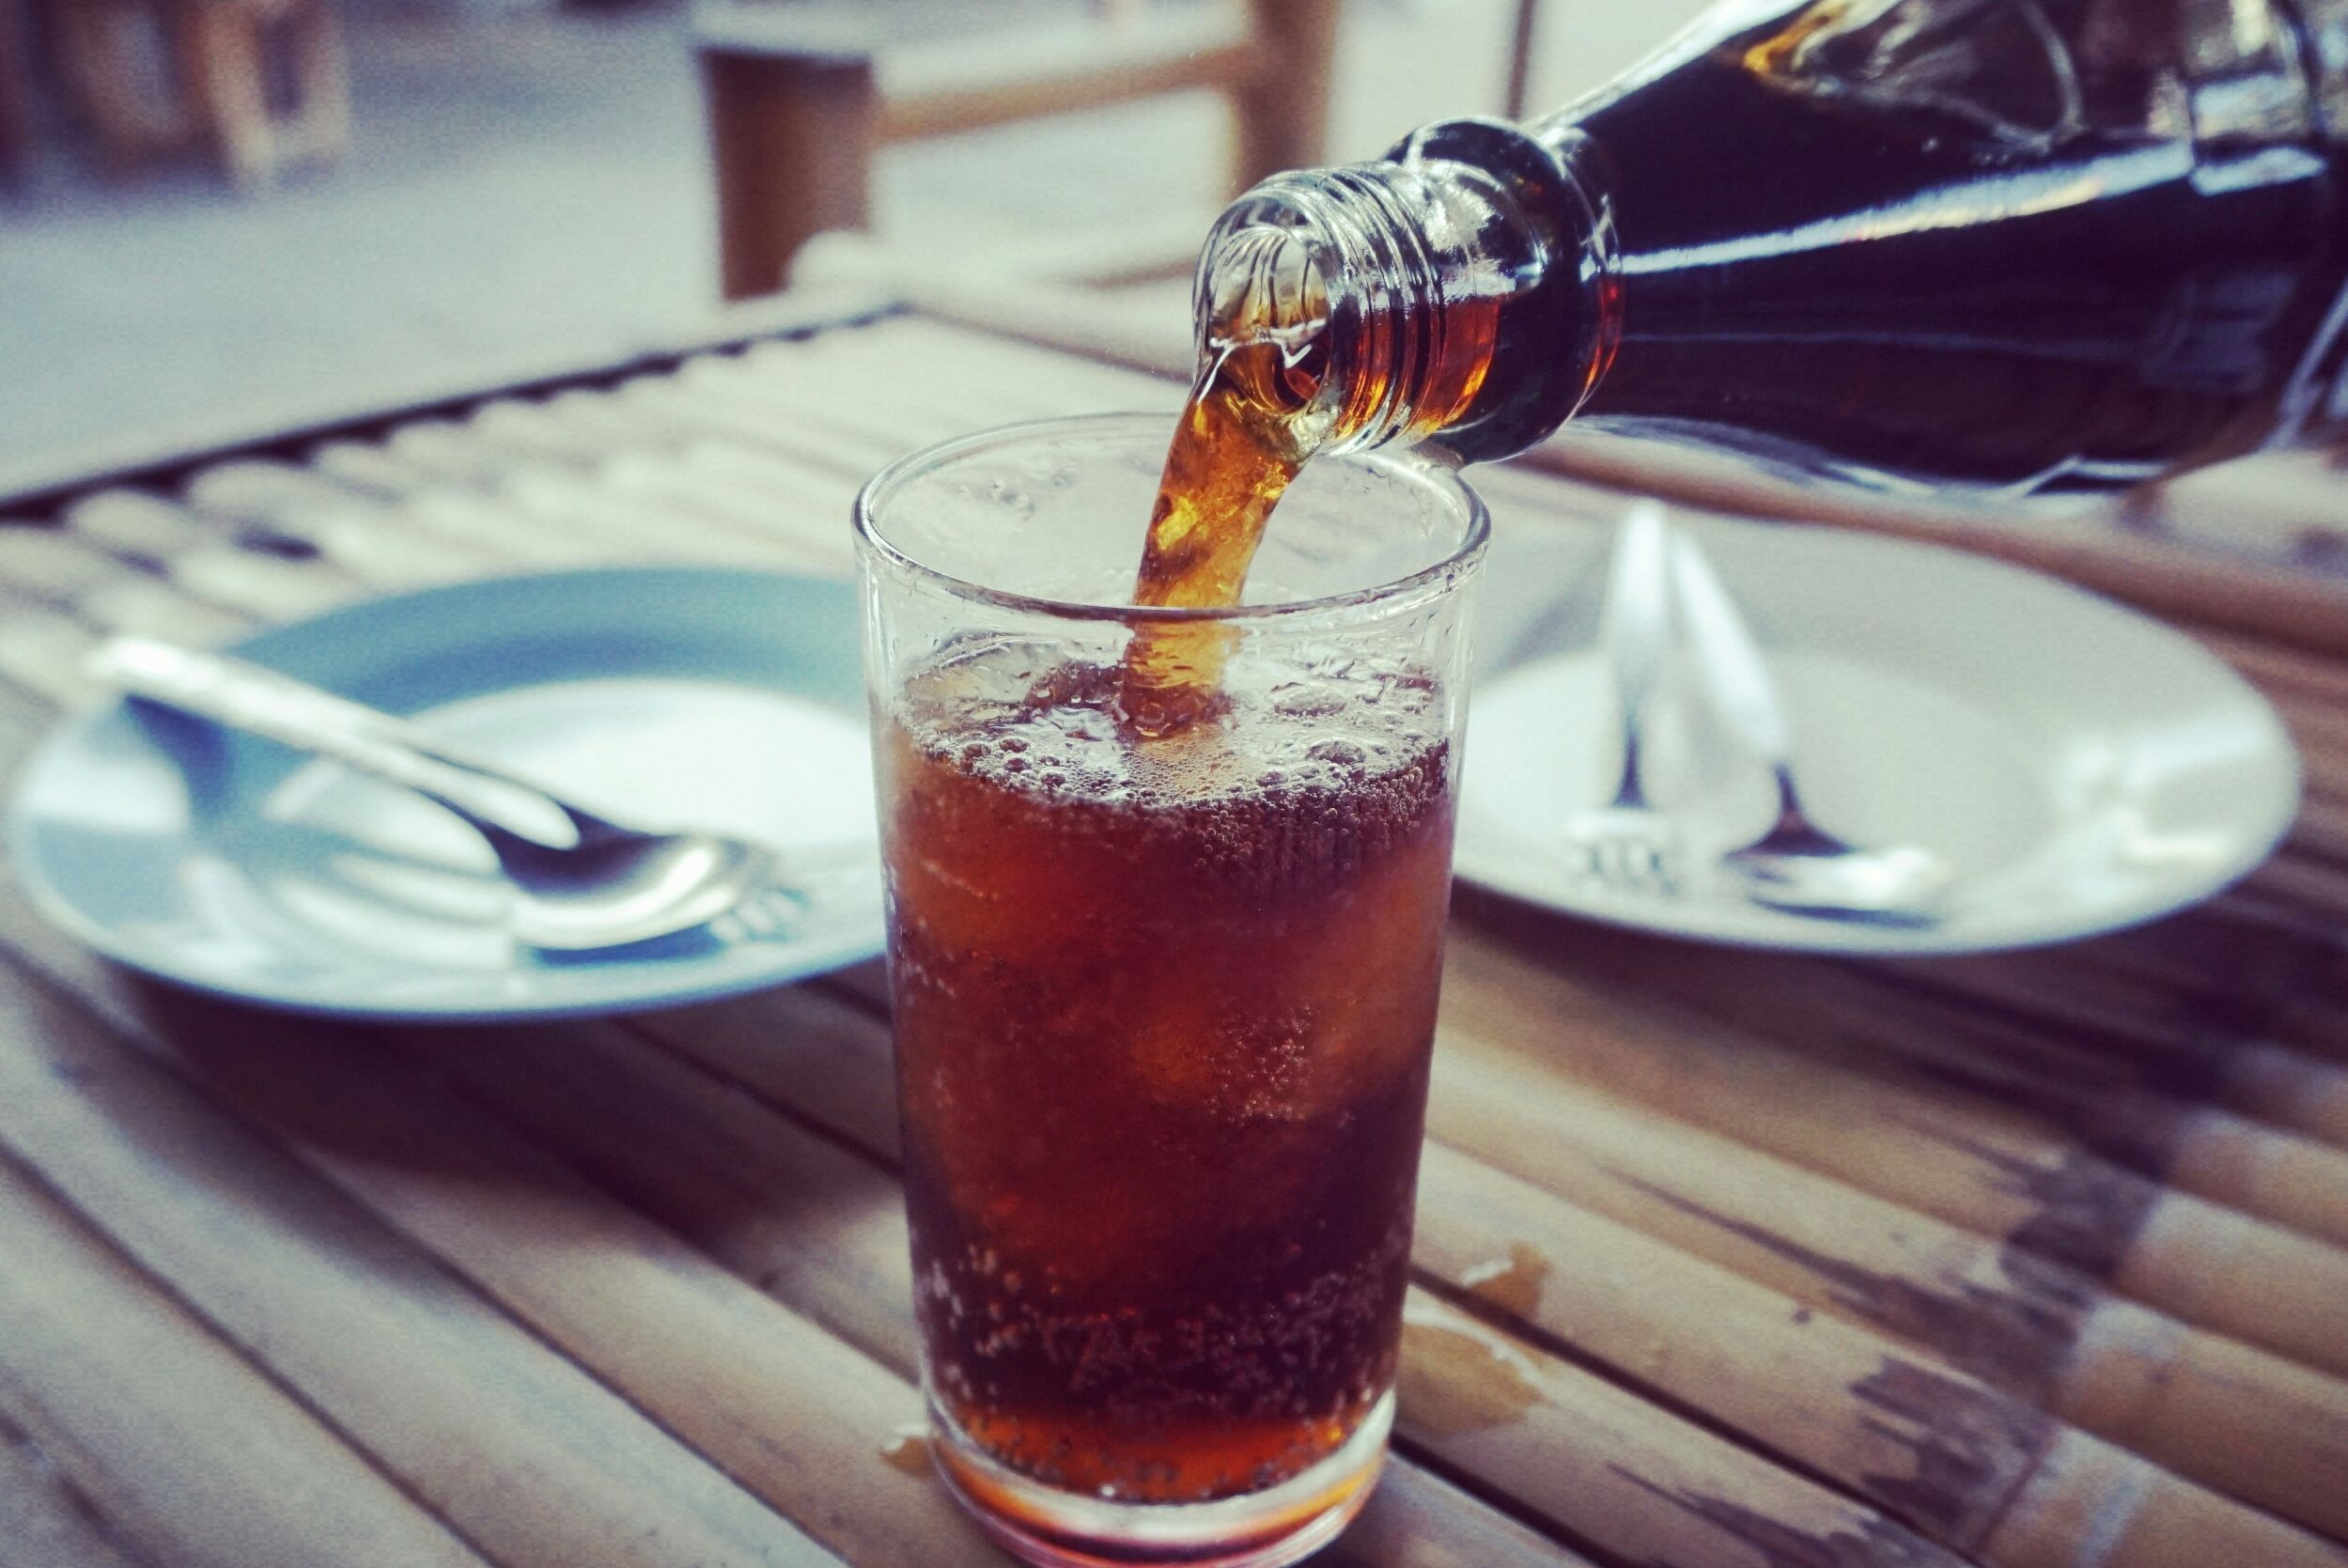 A New Study Examines Link Between Drinking Multiple Diet Sodas A Day And Stroke, Heart Disease